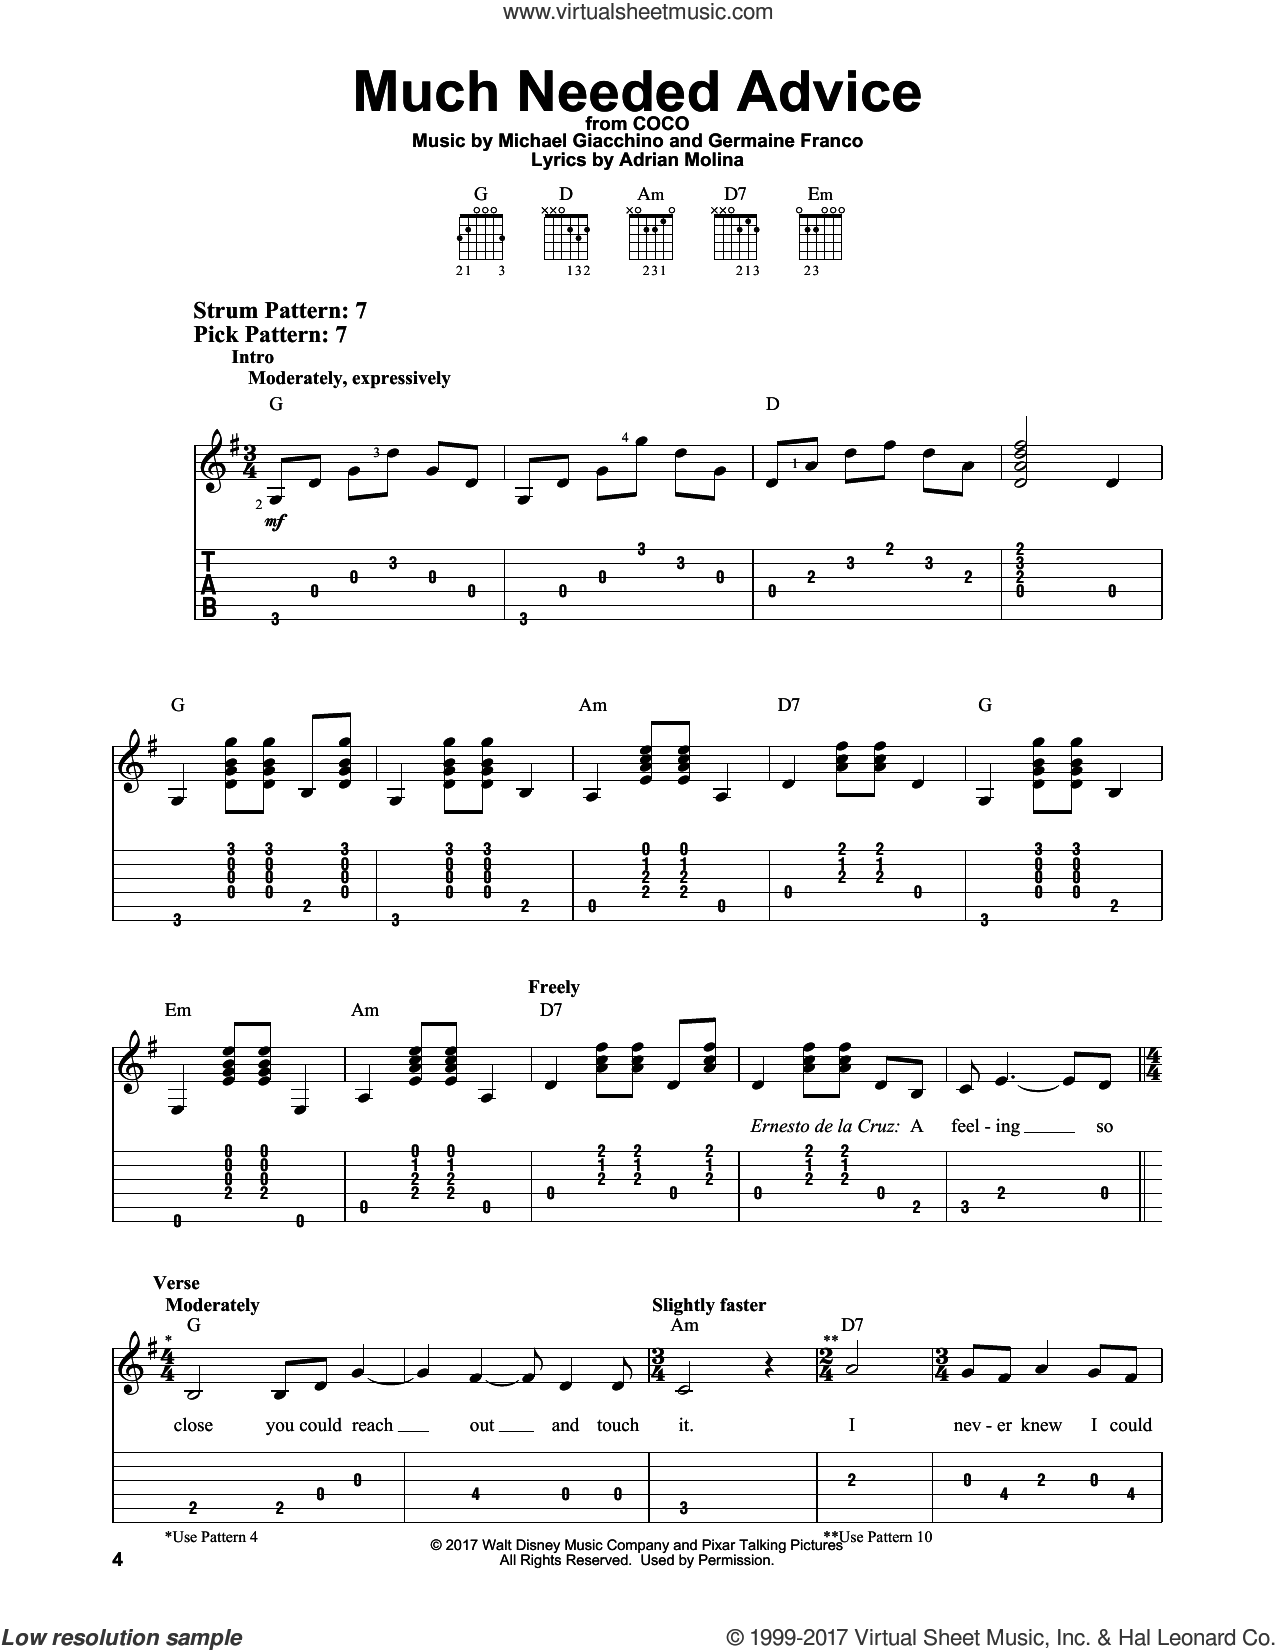 Much Needed Advice sheet music for guitar solo (easy tablature) by Michael Giacchino, Coco (Movie), Adrian Molina and Germaine Franco, easy guitar (easy tablature)